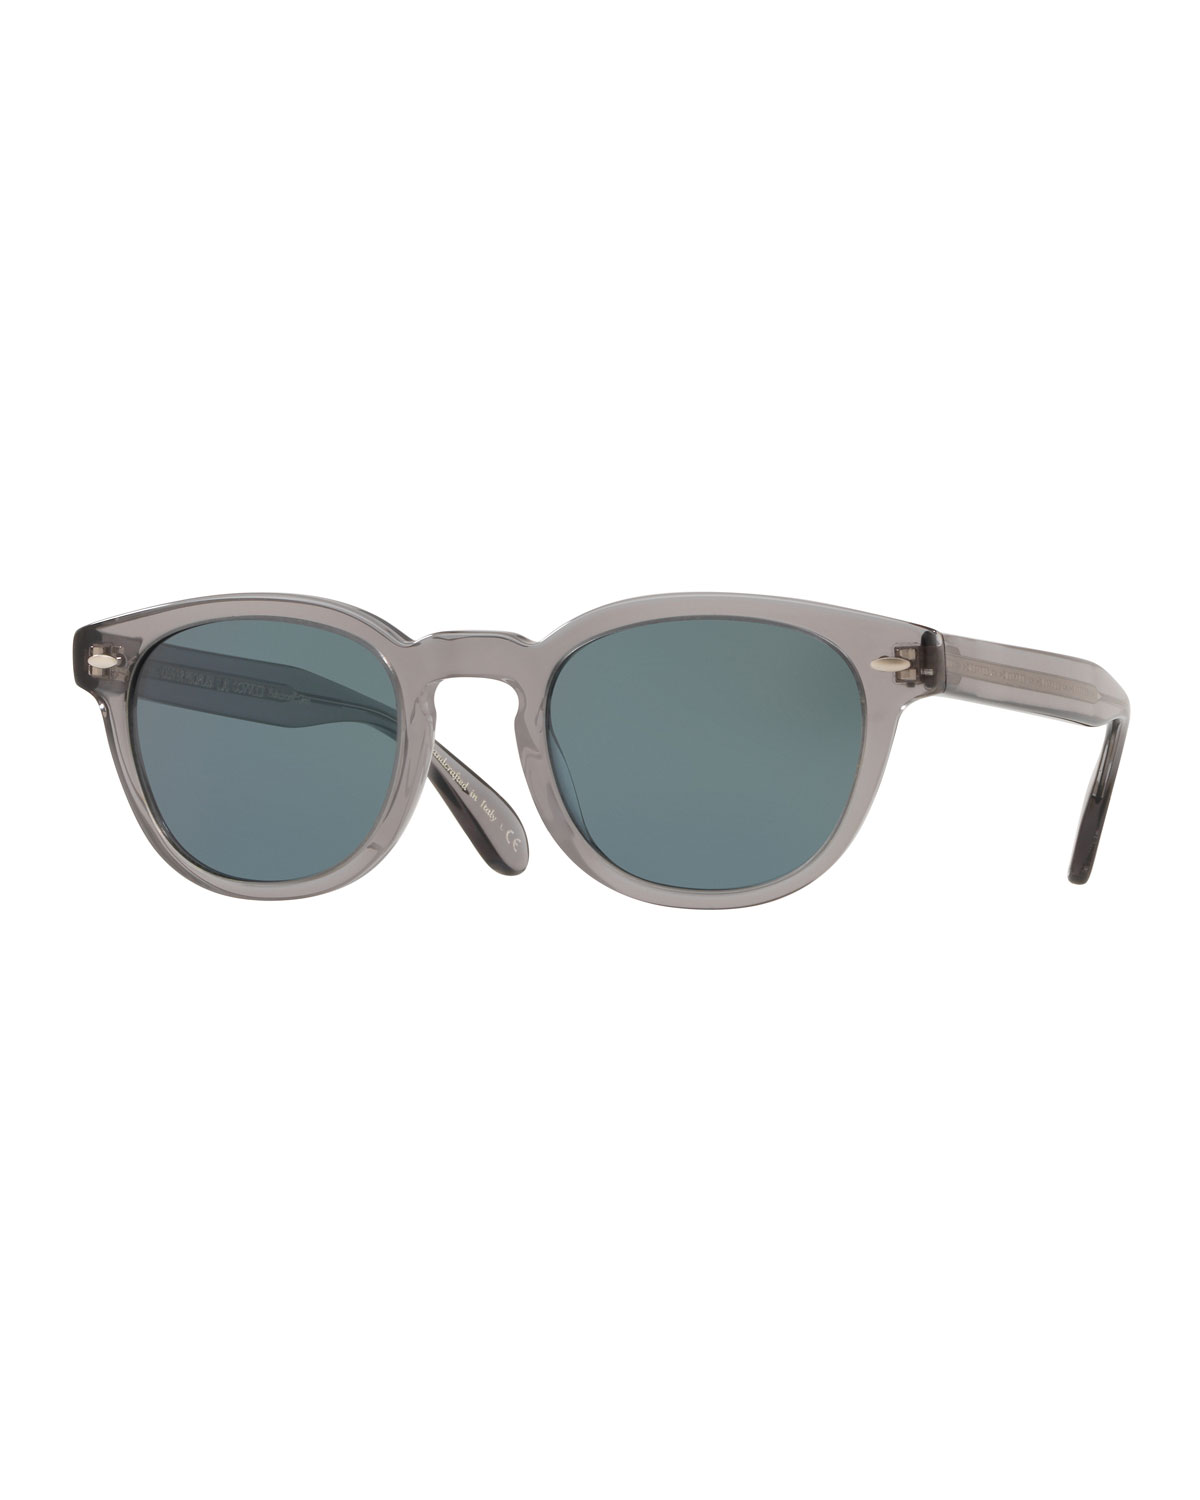 ee84a91d54 Oliver PeoplesMen s Sheldrake Round Photochromic Sunglasses - Workman Gray